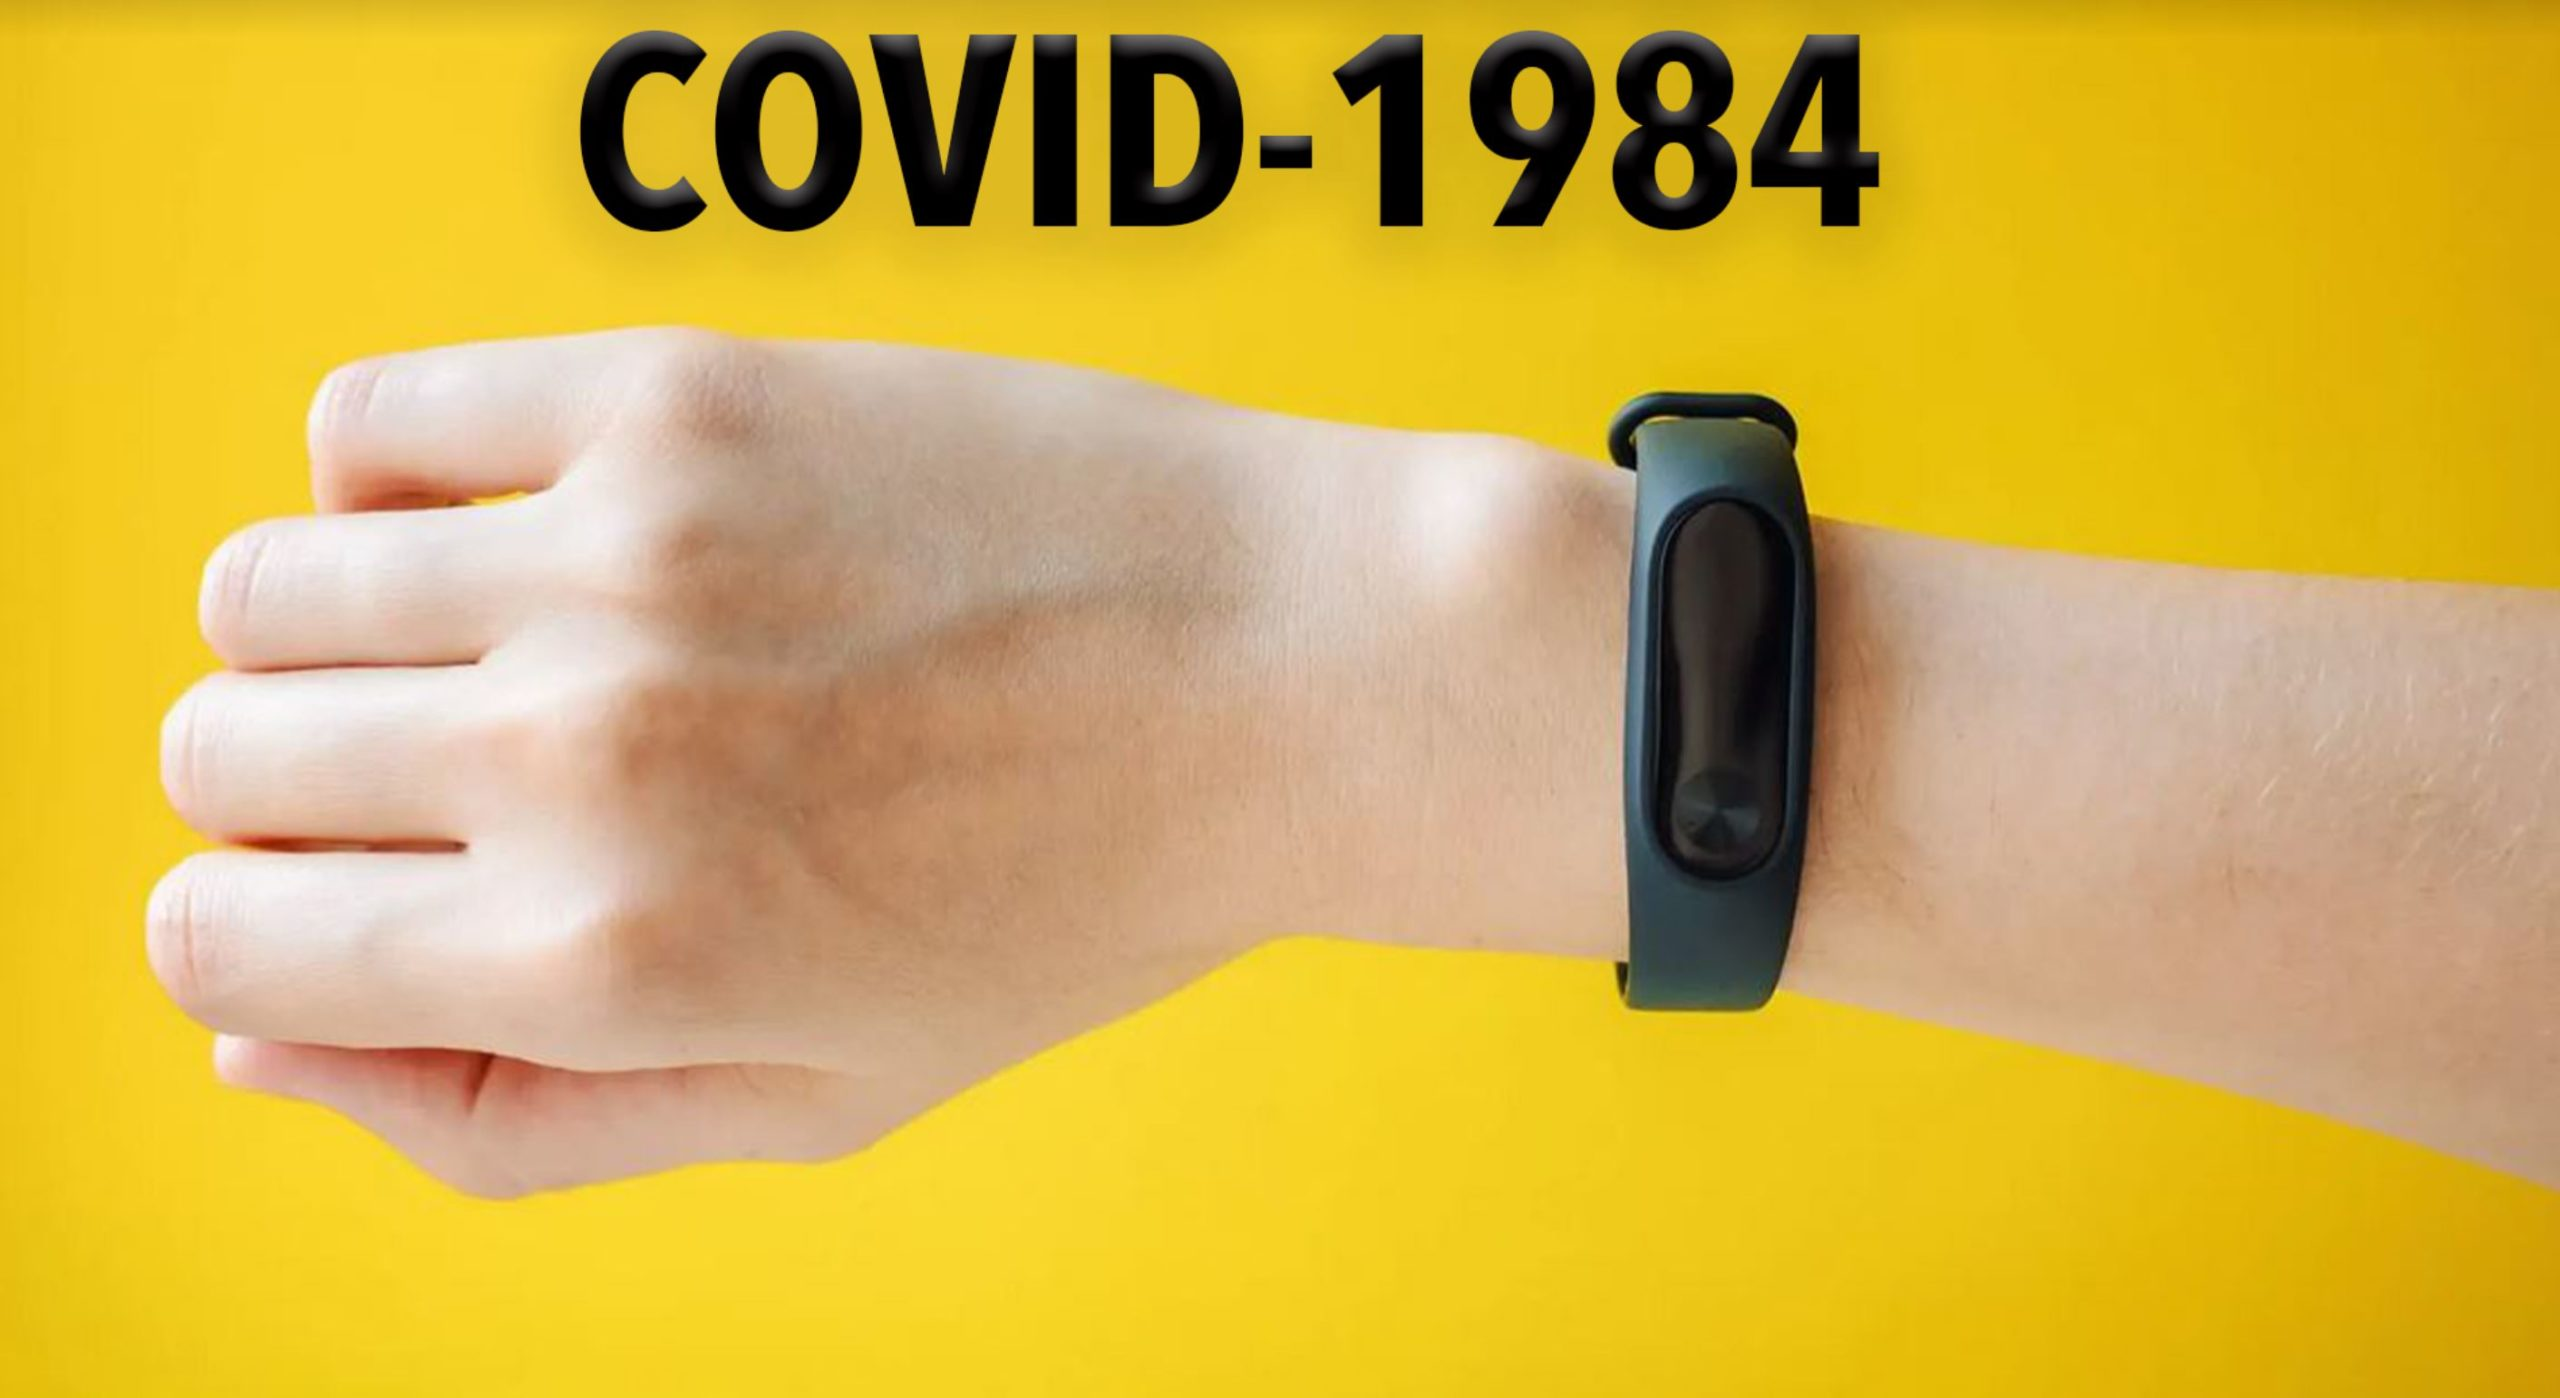 More New Wearable COVID Tech That Constantly Tracks and Zaps People